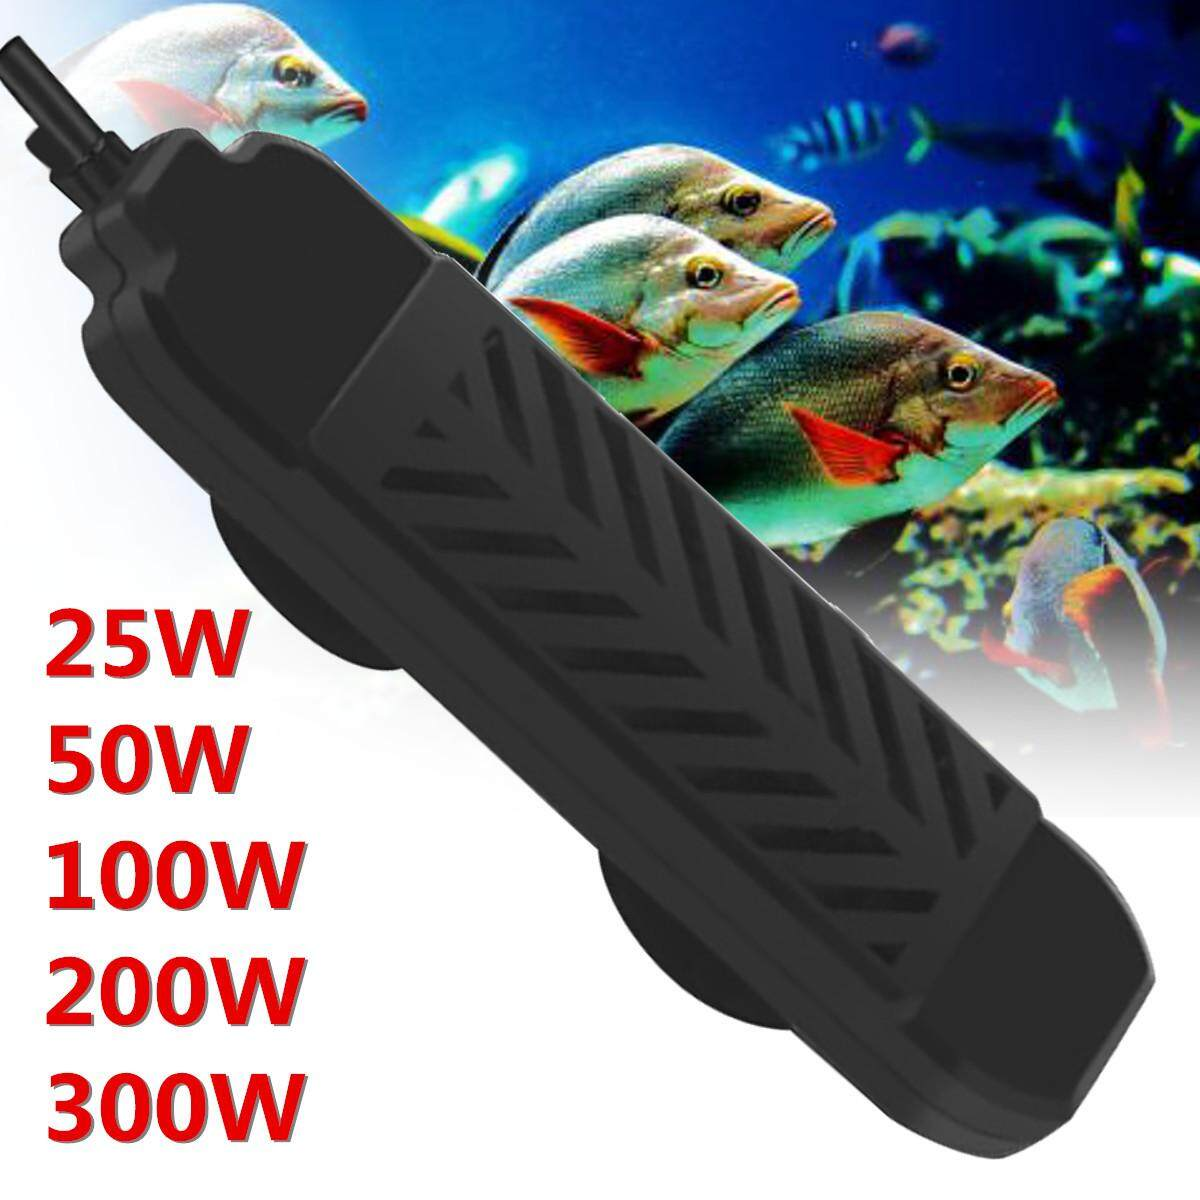 Aquarium Submersible Fish Tank Adjustable Water Heater Rod Temperature control equipment # 200W